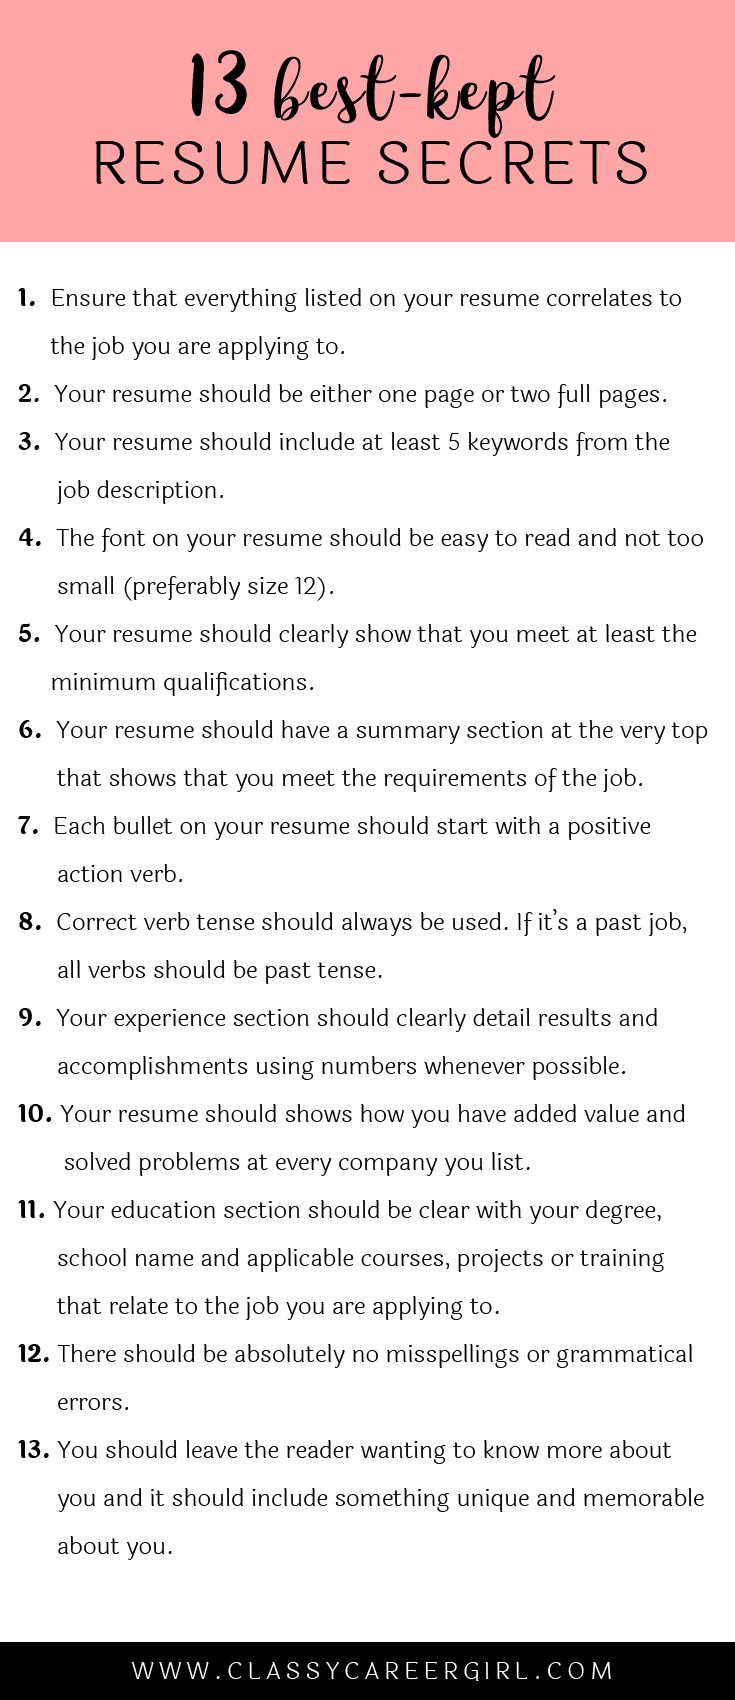 Opposenewapstandardsus  Surprising  Ideas About Resume On Pinterest  Cv Format Resume Cv And  With Magnificent Some Hiring Managers Will Toss Your Resume Out If You Dont Know These  With Cool Manager Skills For Resume Also Logistics Analyst Resume In Addition Objective Summary For Resume And Job Descriptions For Resumes As Well As Door To Door Sales Resume Additionally Resume Template Modern From Pinterestcom With Opposenewapstandardsus  Magnificent  Ideas About Resume On Pinterest  Cv Format Resume Cv And  With Cool Some Hiring Managers Will Toss Your Resume Out If You Dont Know These  And Surprising Manager Skills For Resume Also Logistics Analyst Resume In Addition Objective Summary For Resume From Pinterestcom